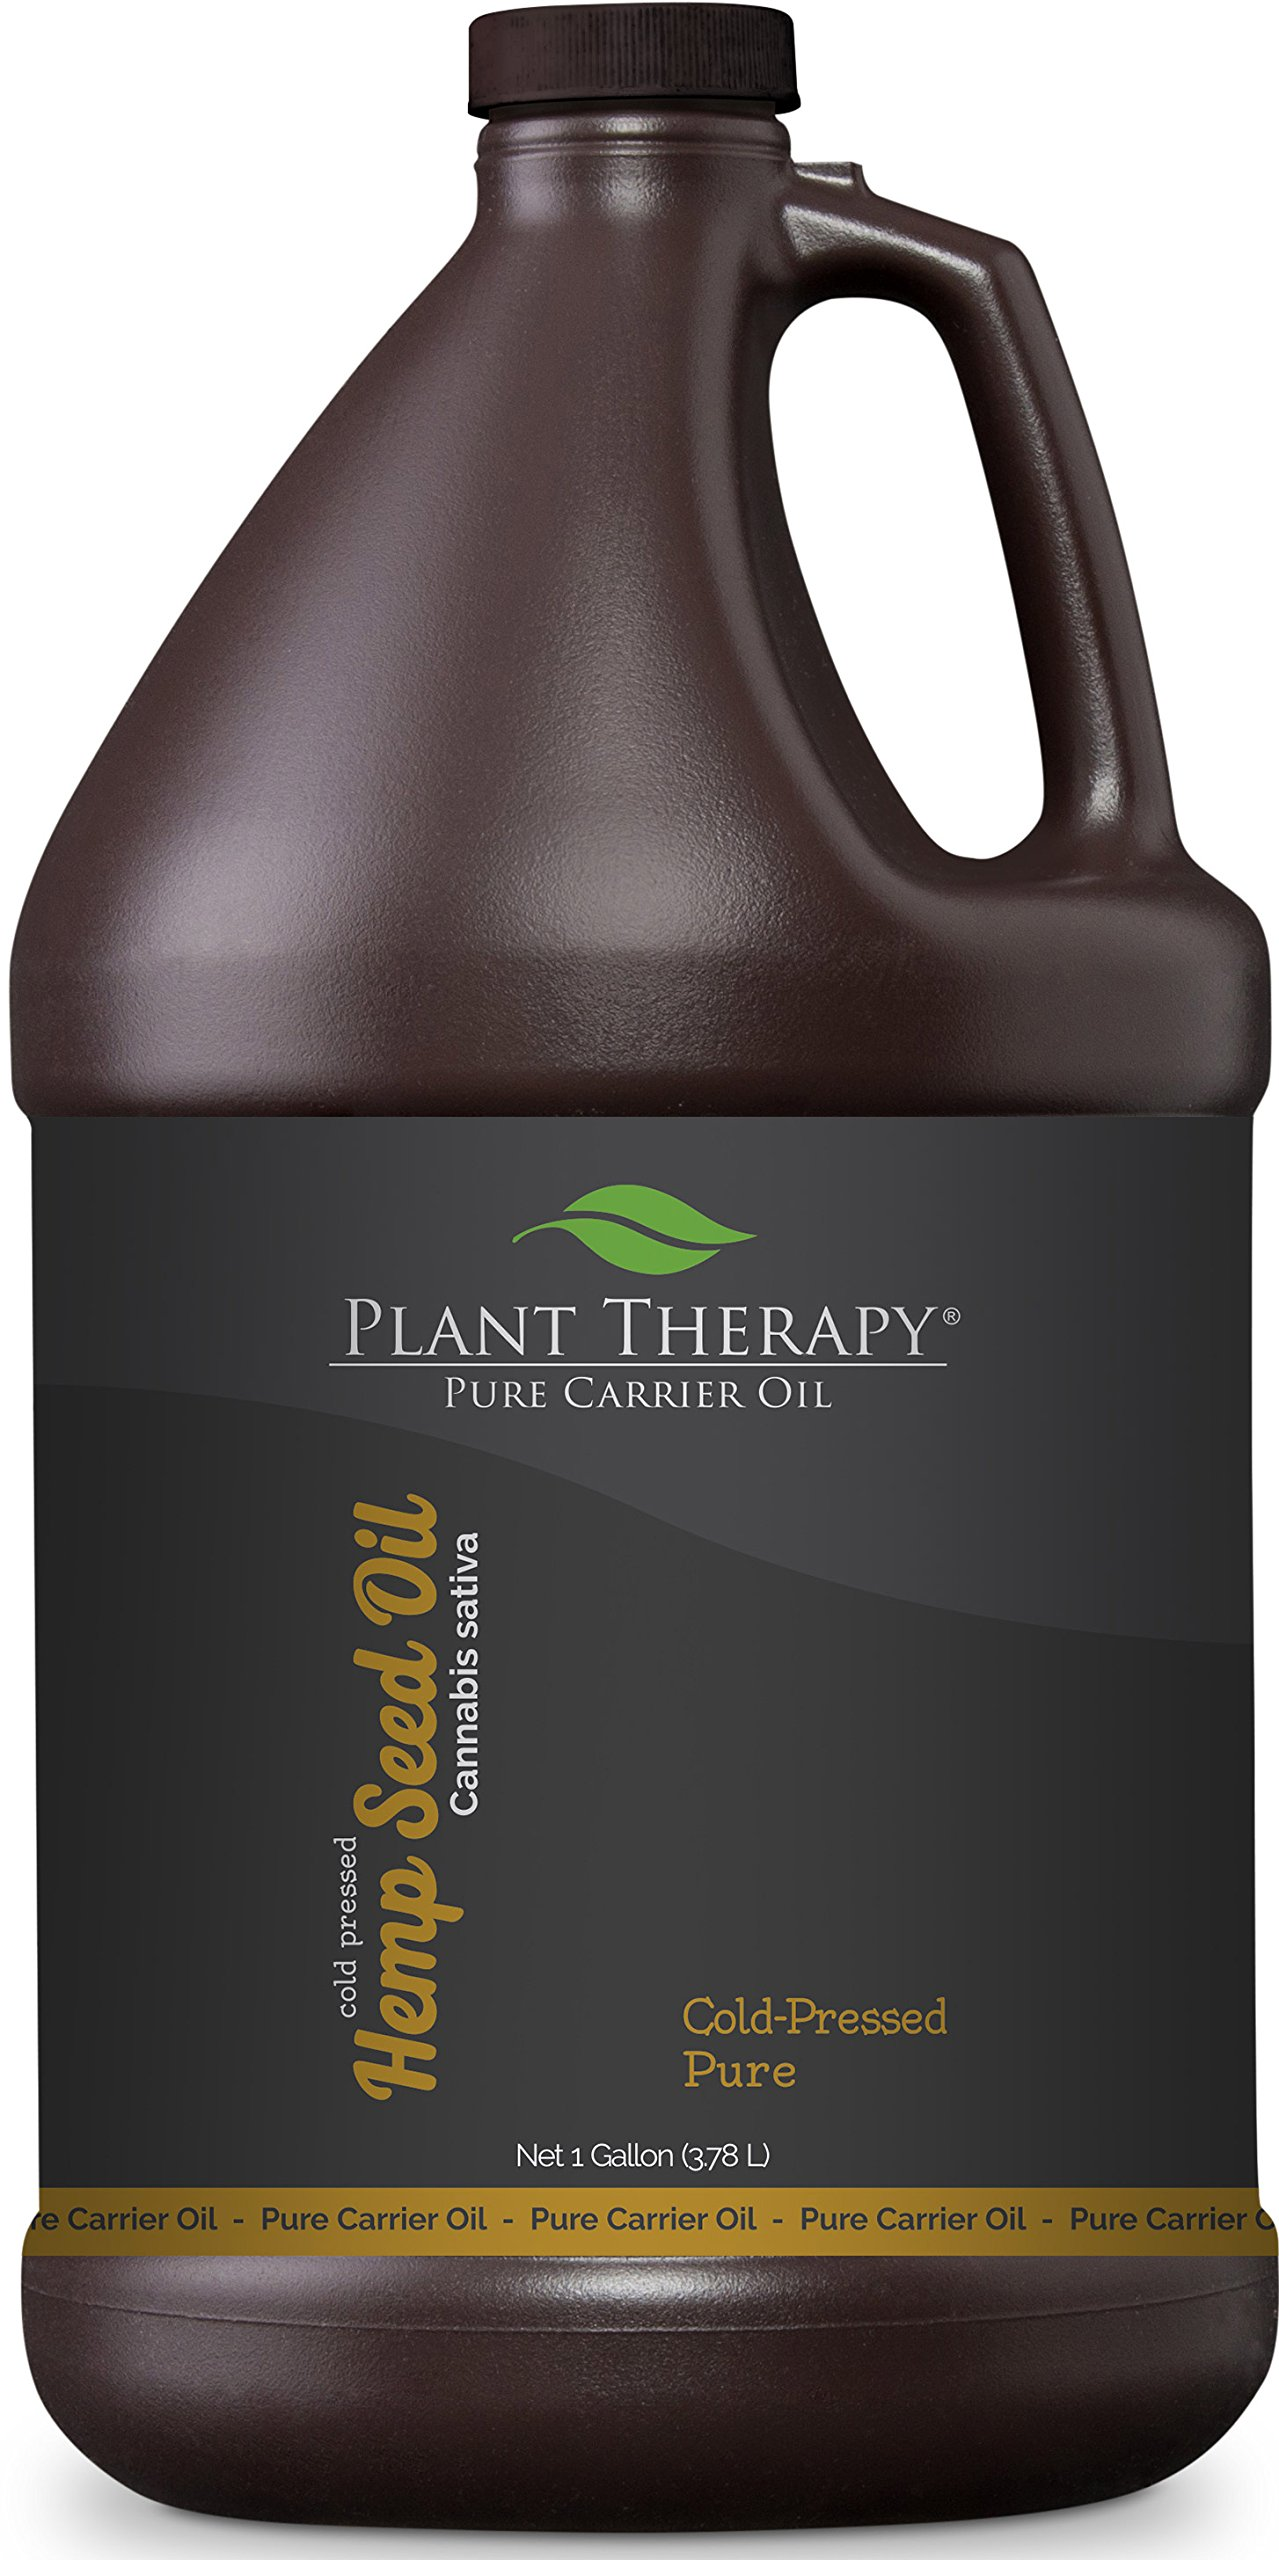 Plant Therapy Hemp Seed Carrier Oil. A base for Aromatherapy, Essential Oils, or Massage Use. 1 gal.